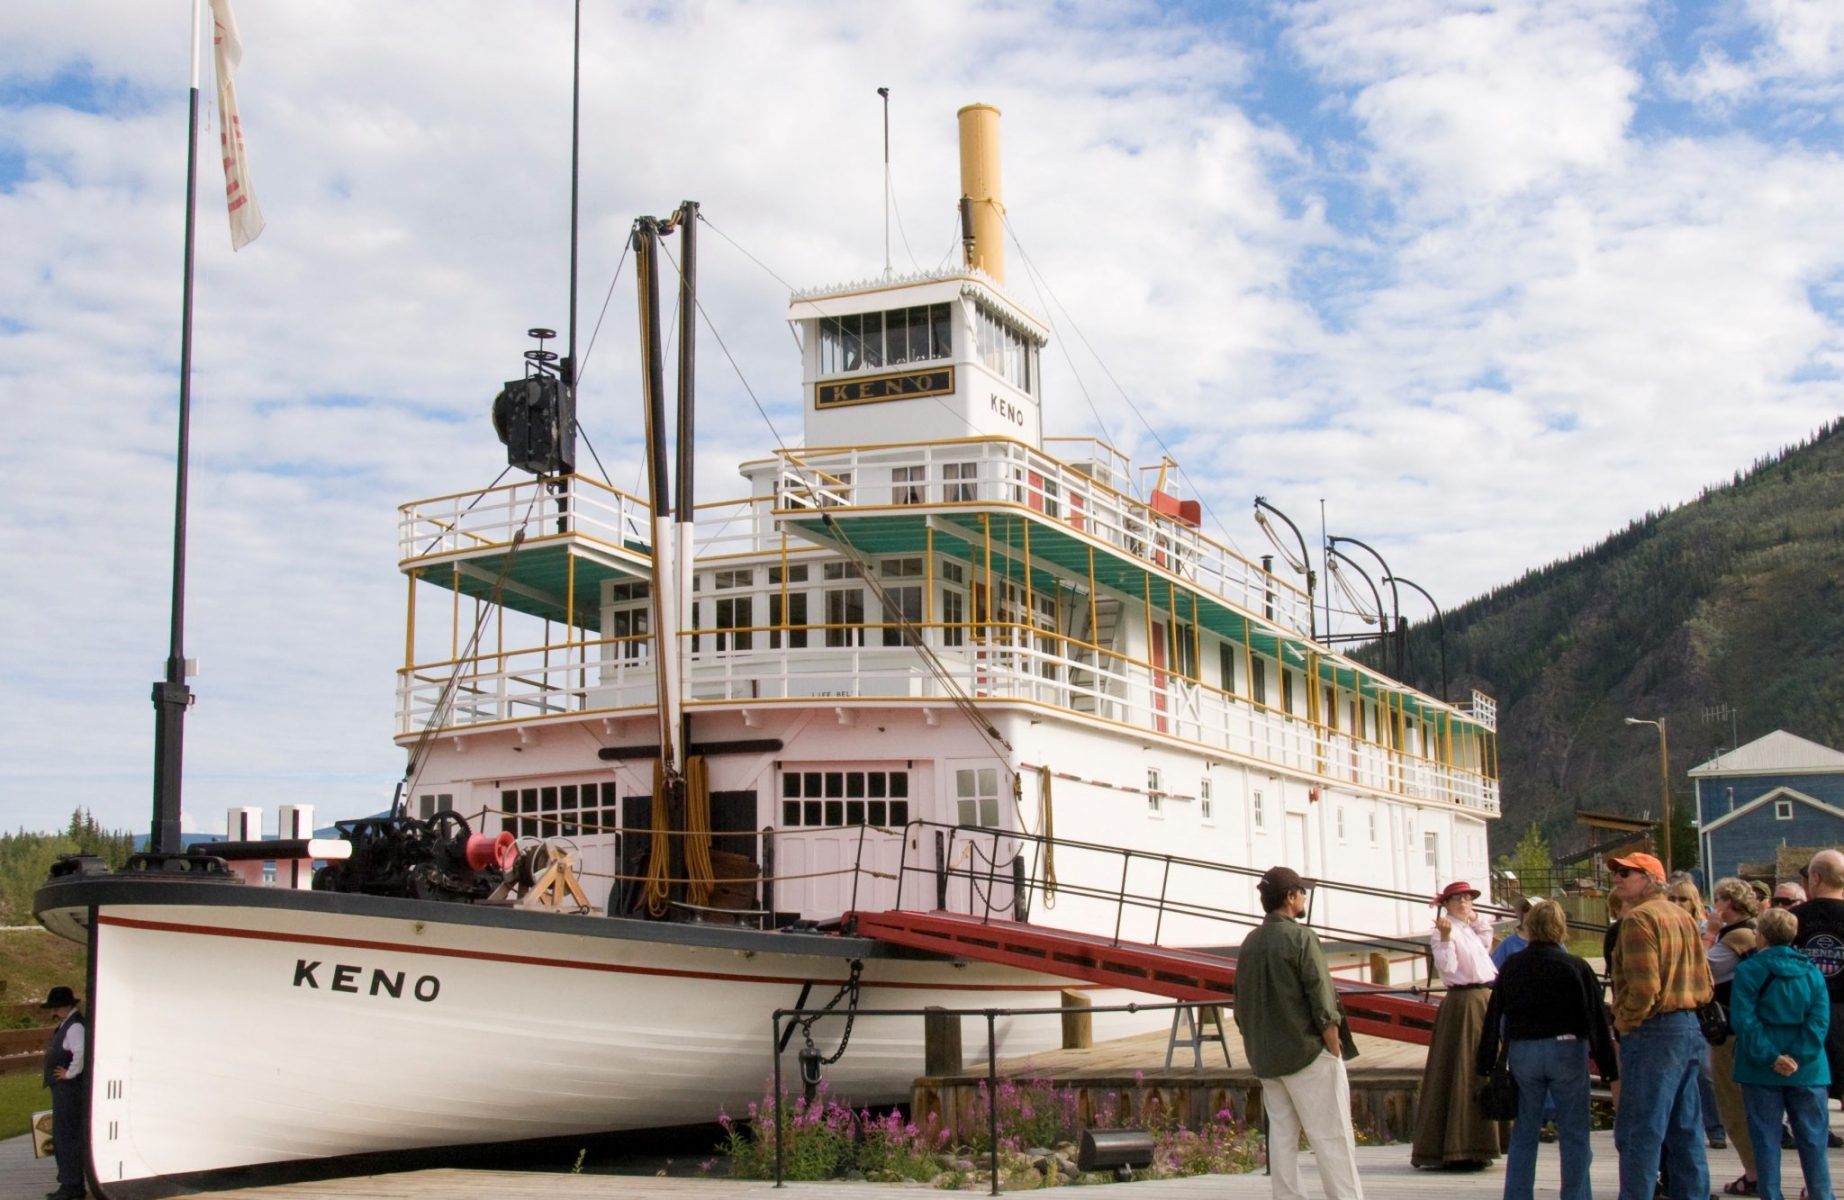 A restored paddle wheeler in downtown Dawson City. It's white with red and green trim and called the Keno. A group of people on a tour are standing in front of it